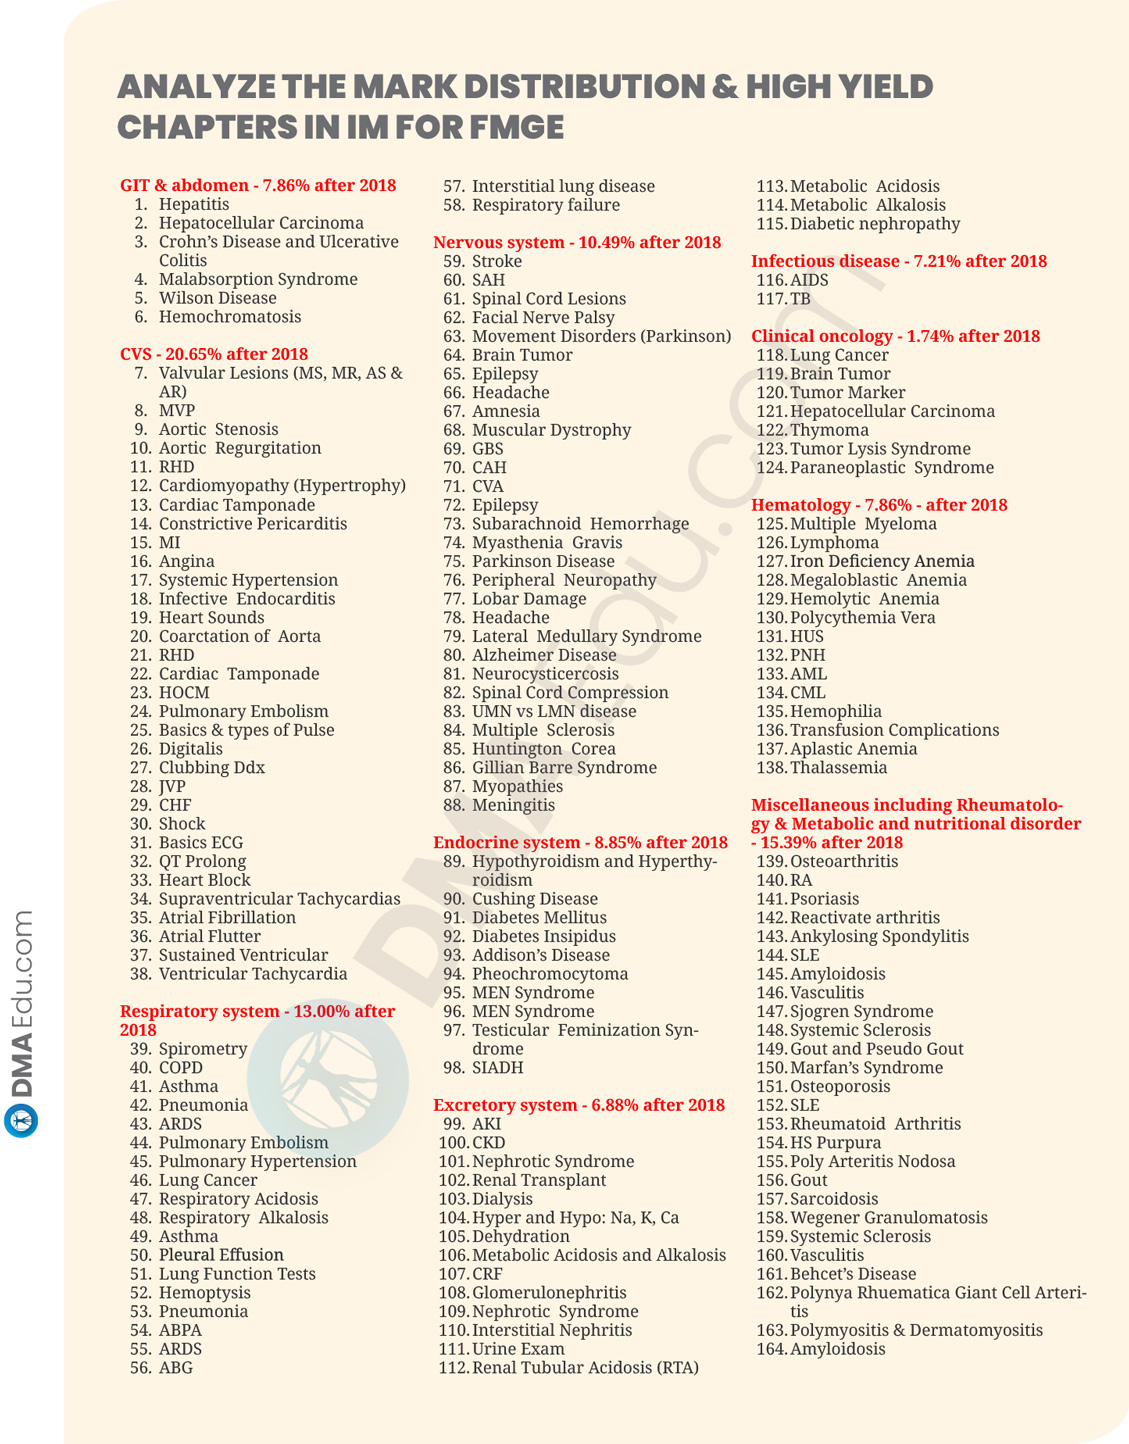 19 SUBJECTS HIGH YILD CHAPTER4 How to Prepare Medicine (IM) for FMGE 2021? FMGE, FMGE preparation, FMGE Study Plan, FMGE Tips